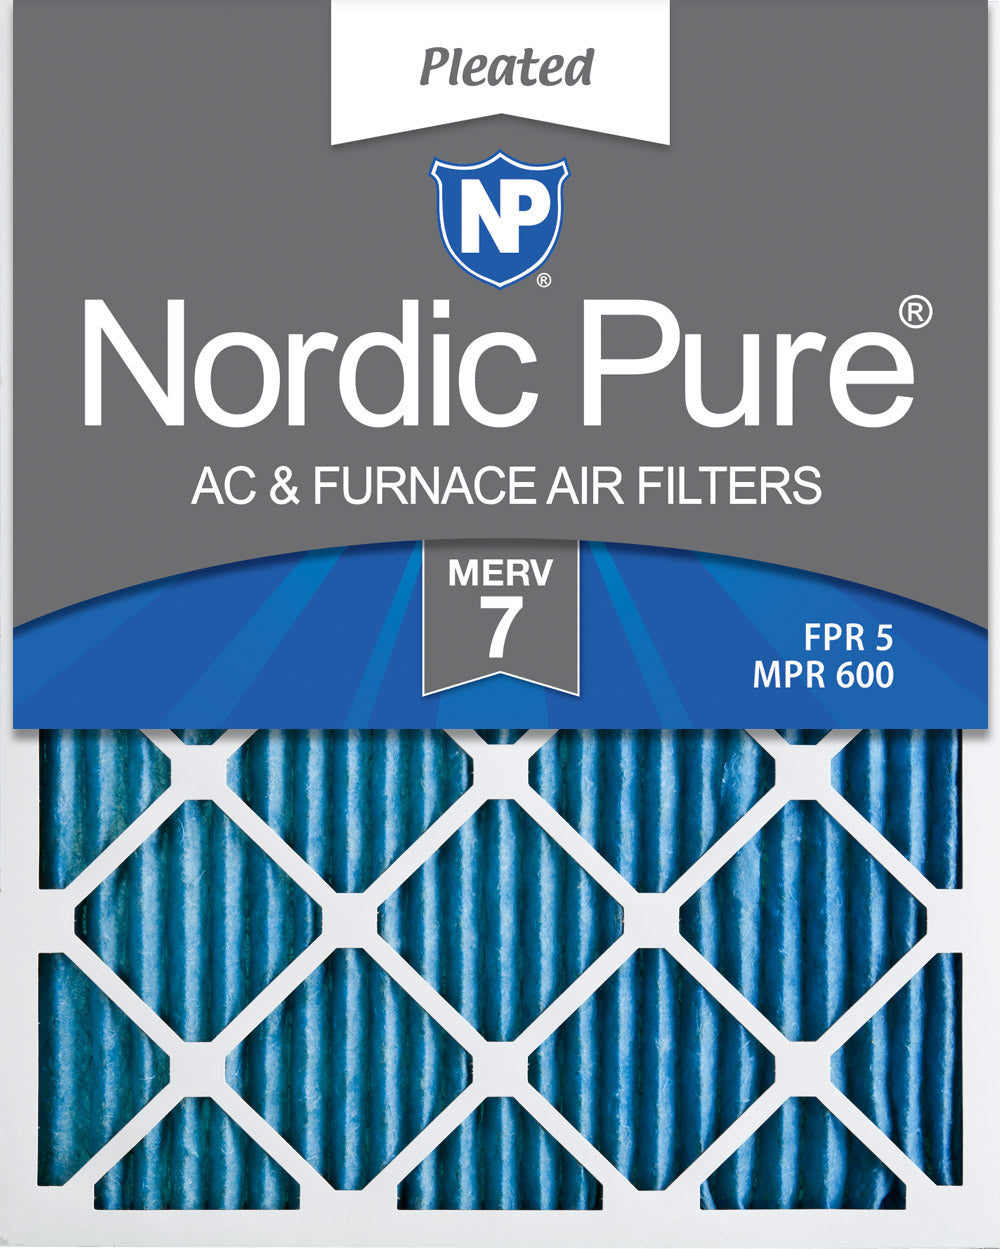 14x20x2 Pleated MERV 7 Air Filters 3 Pack